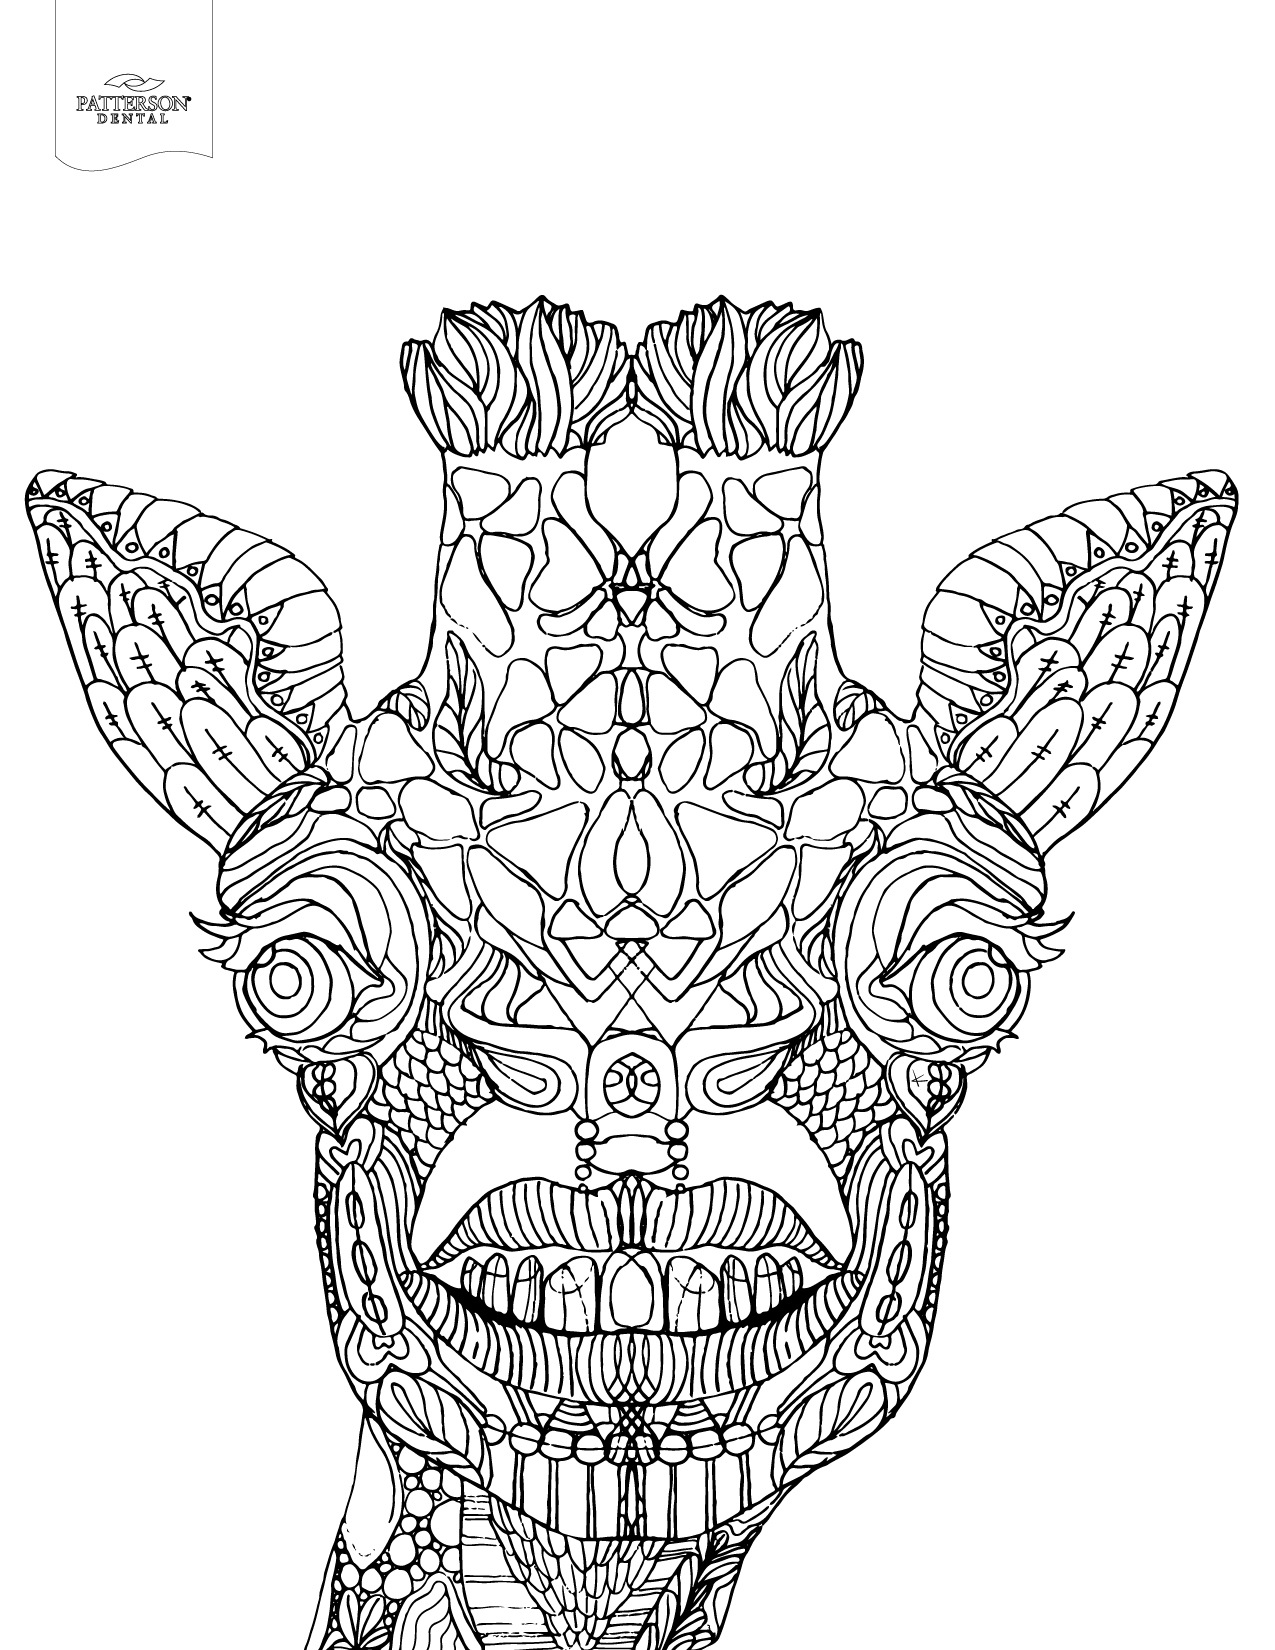 adults color coloring books 10 toothy adult coloring pages printable off the cusp adults coloring books color